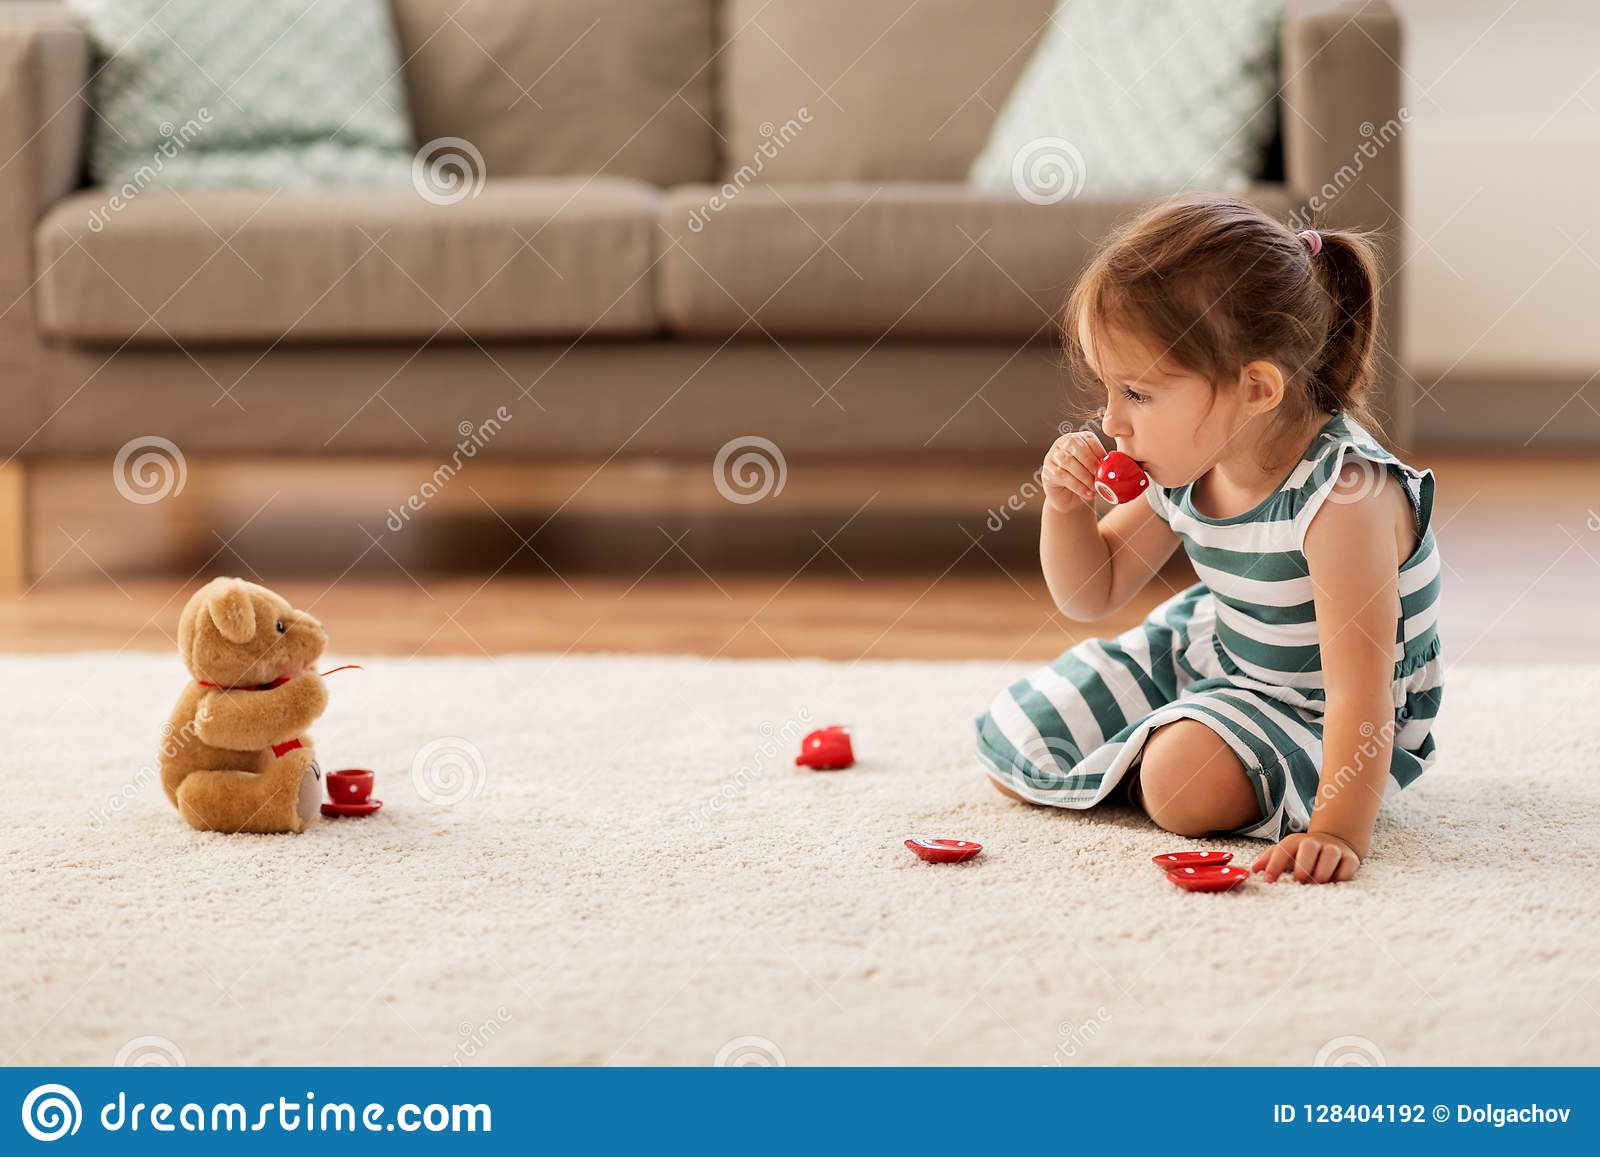 Little Girl Playing With Toy Tea Set At Home Stock Photo Image Of